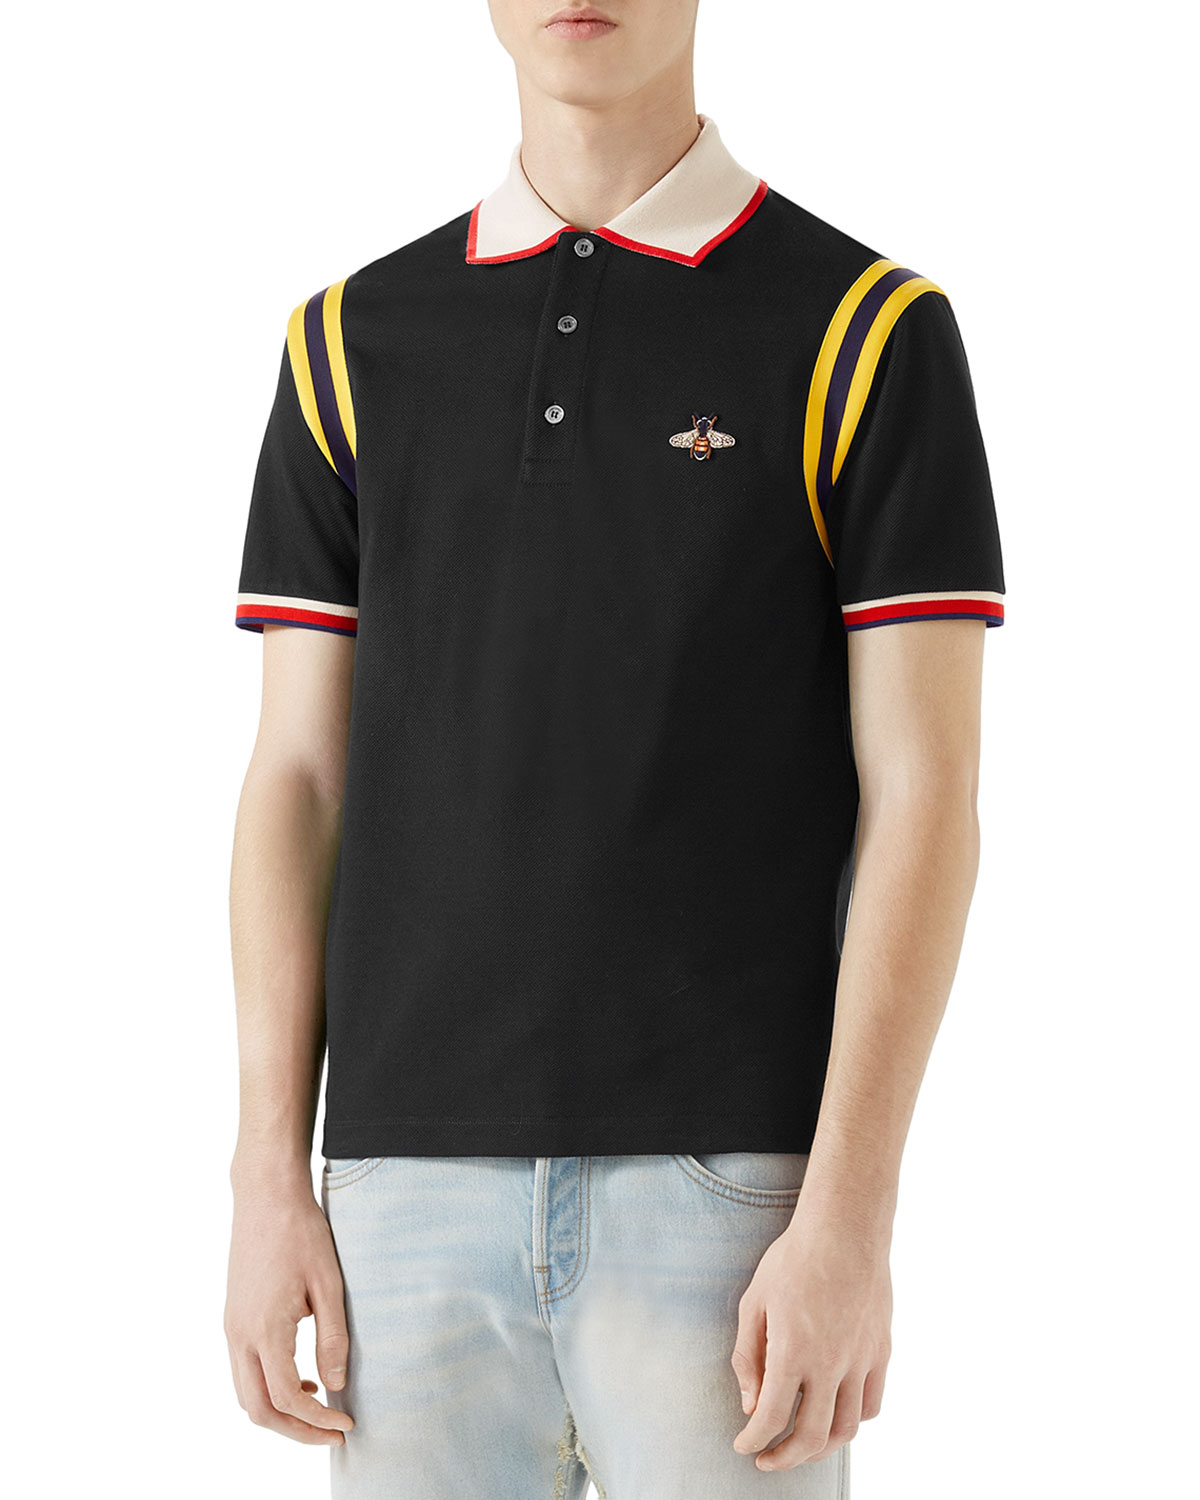 Gucci Bee Embroidered Polo Shirt Neiman Marcus